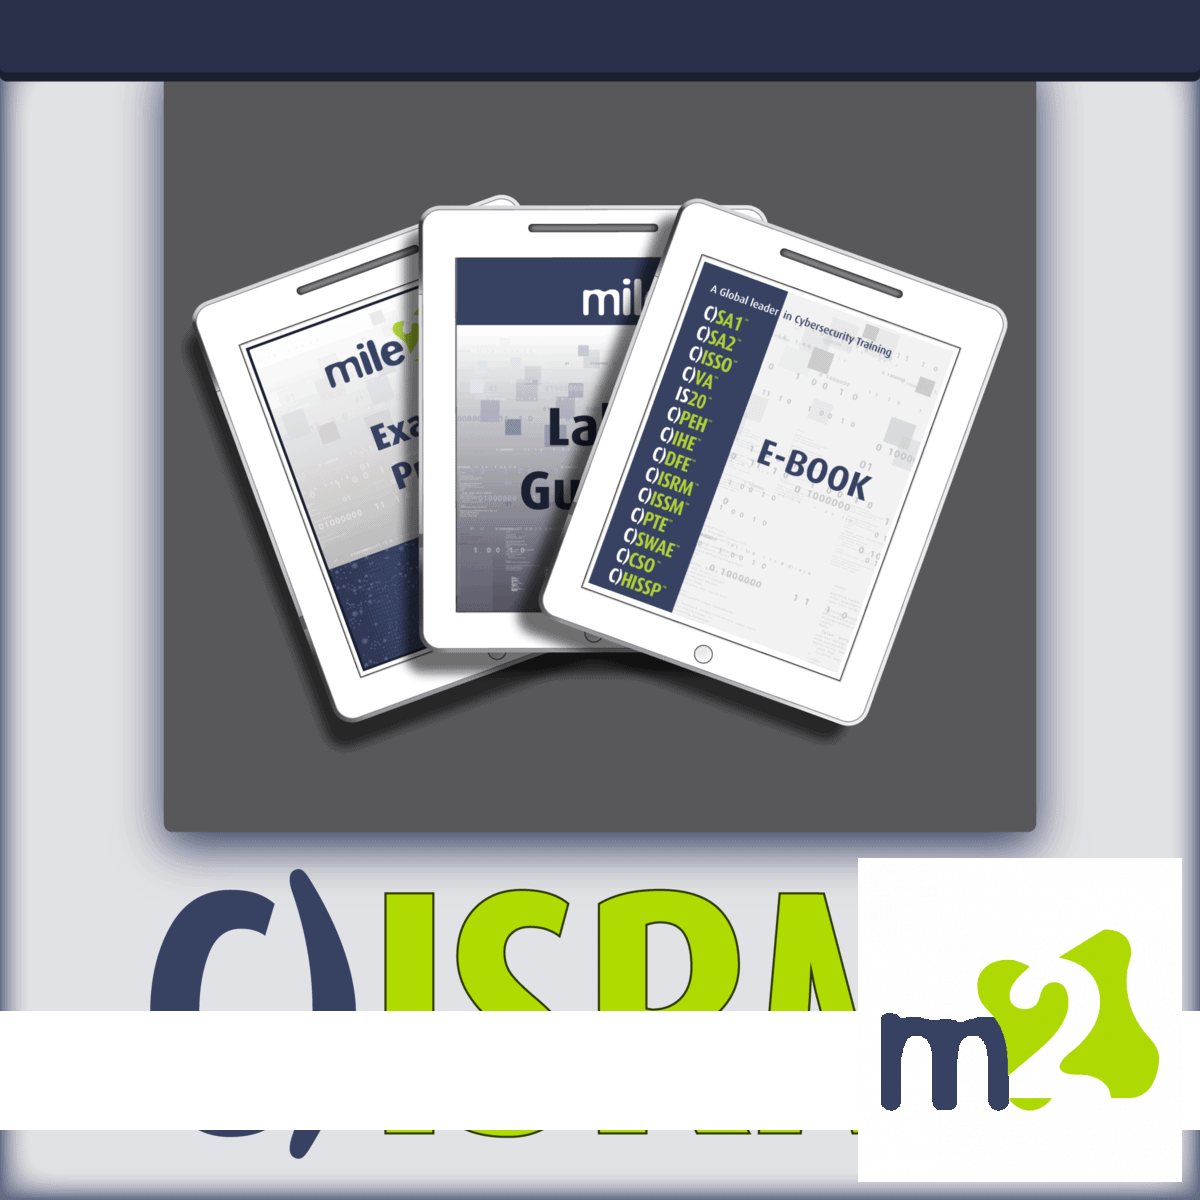 C)ISRMcertified information systems risk manager e-course kit